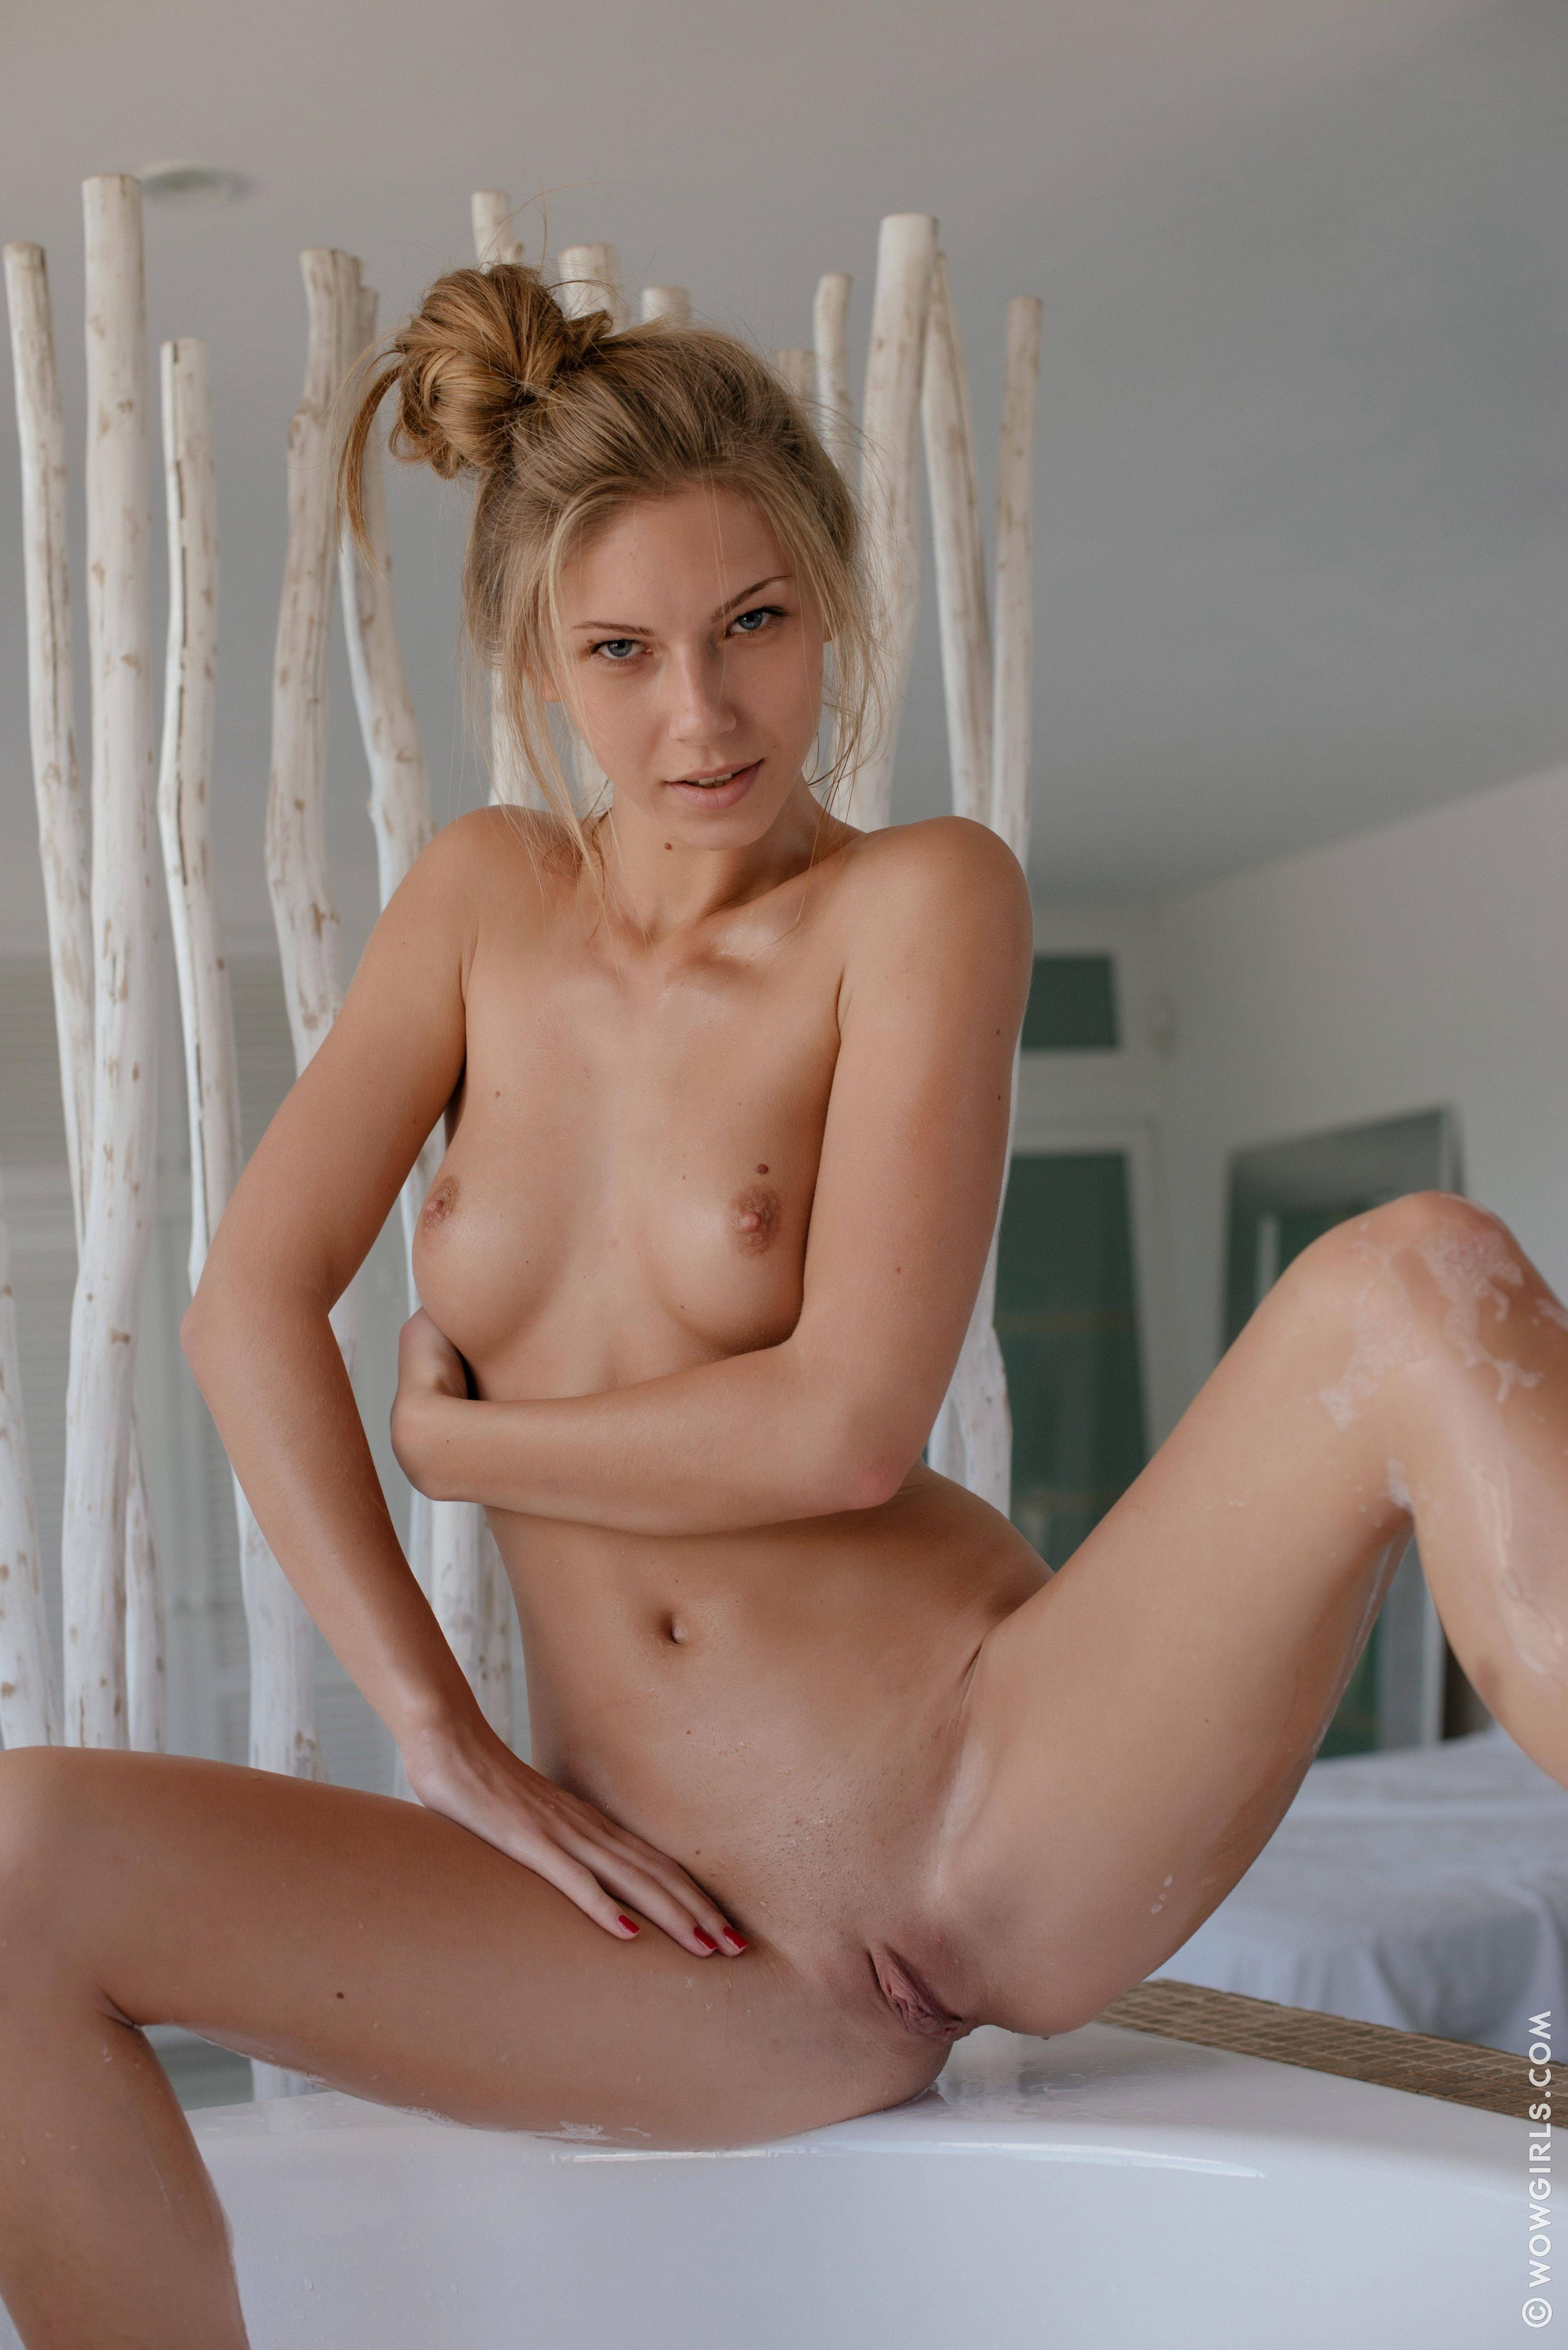 100 Images of Angelica Porn Pictures